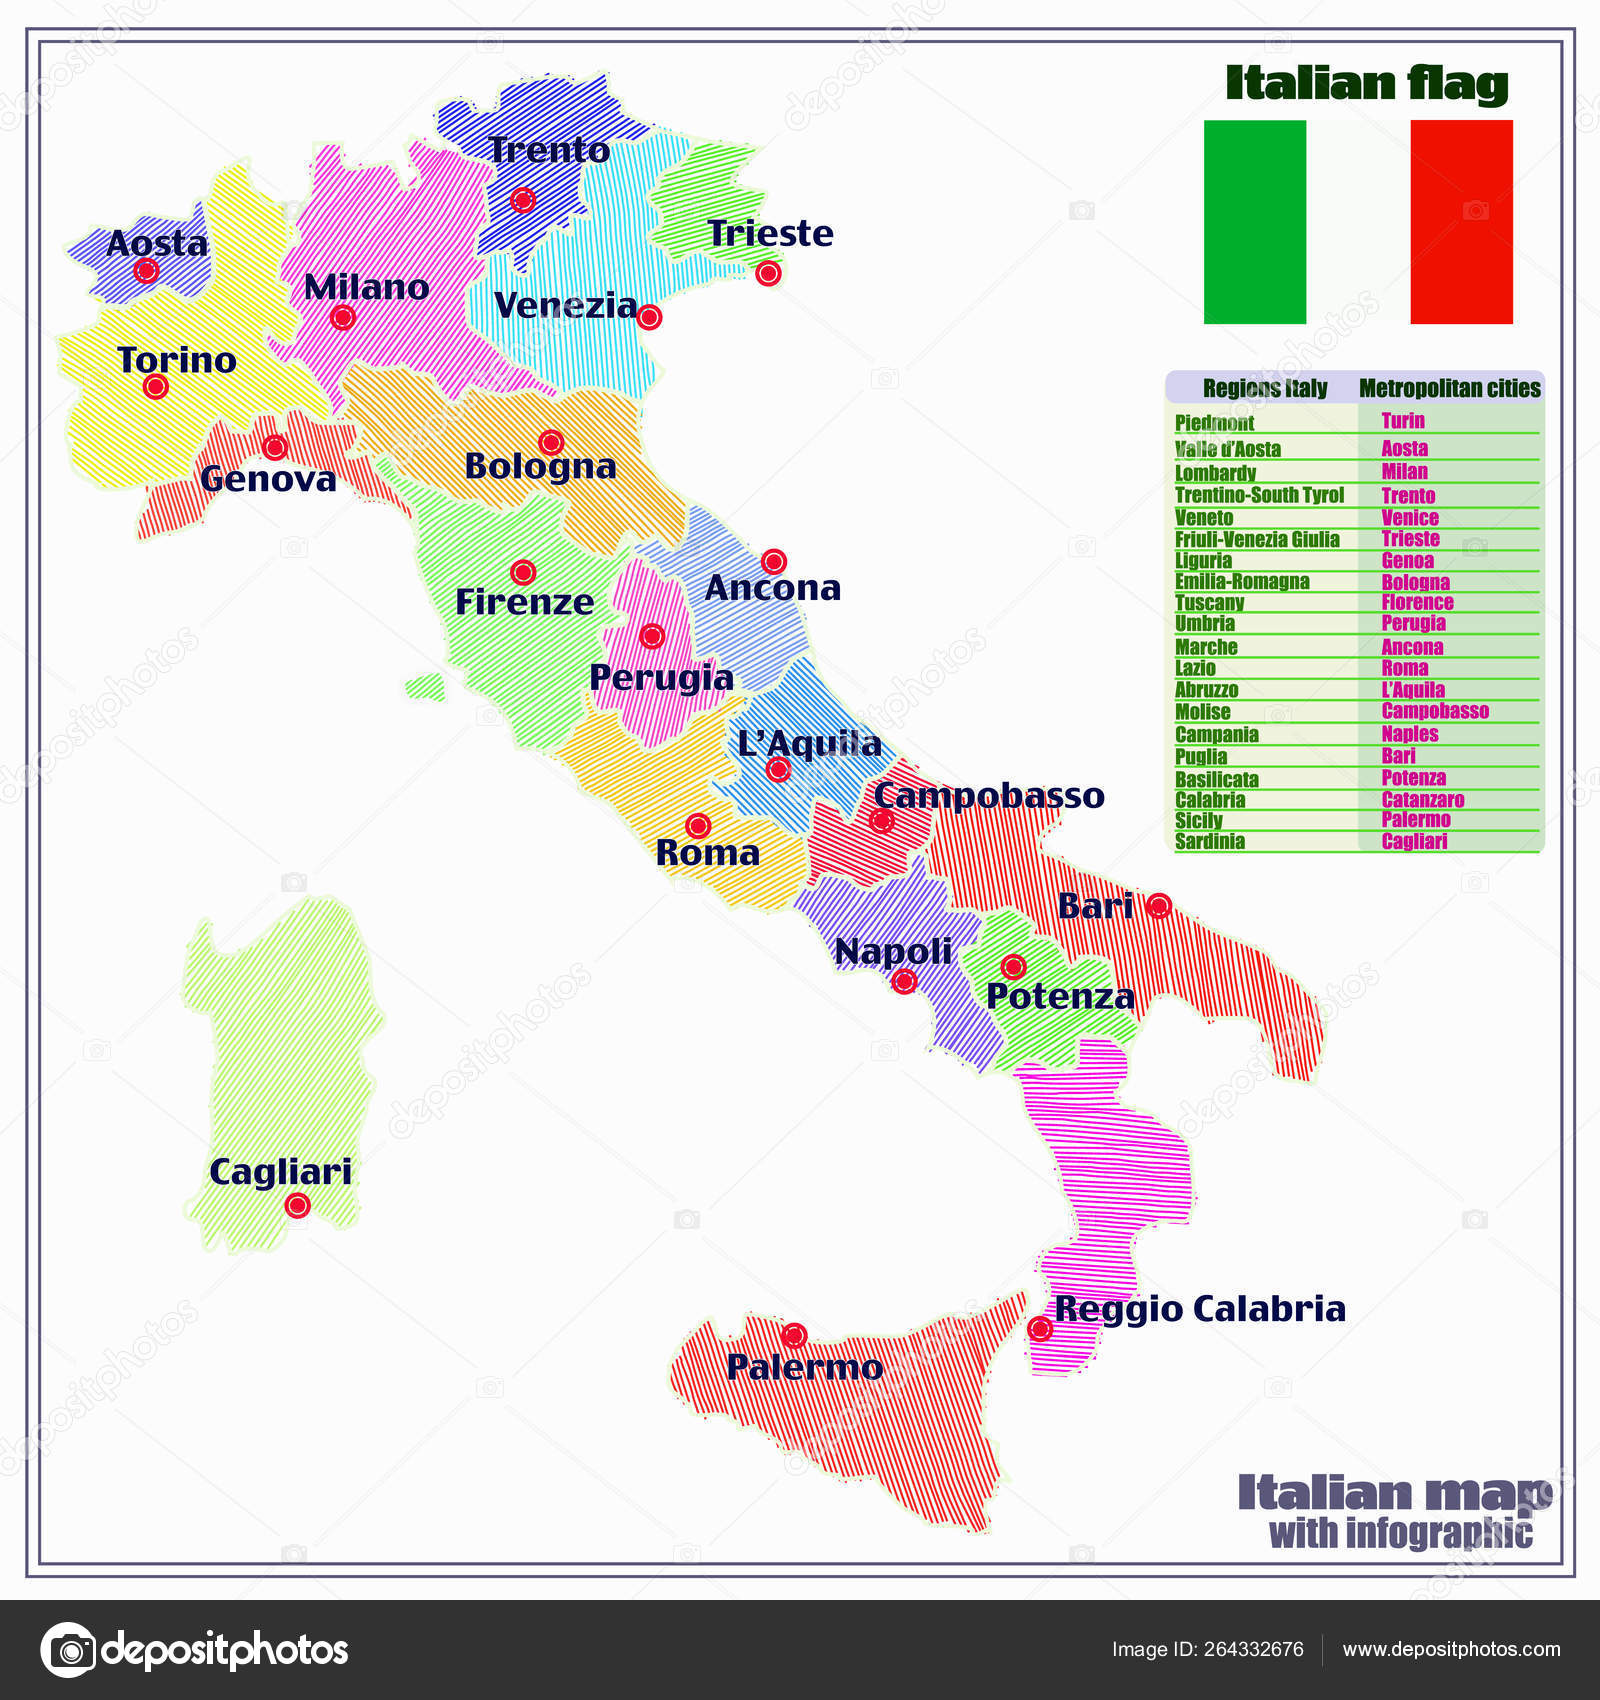 Italy map with Italian regions and infographic. — Stock ... on germany map regions, ancient rome map regions, portugal map regions, italy history, israel map regions, france map regions, italy population pie-chart, espana map regions, africa map regions, spain map regions, ireland map regions, italy gran paradiso national park, ethiopia map regions, china map regions, italy capital city, egypt map regions, denmark map regions, iraq map regions, madagascar map regions, el salvador map regions,